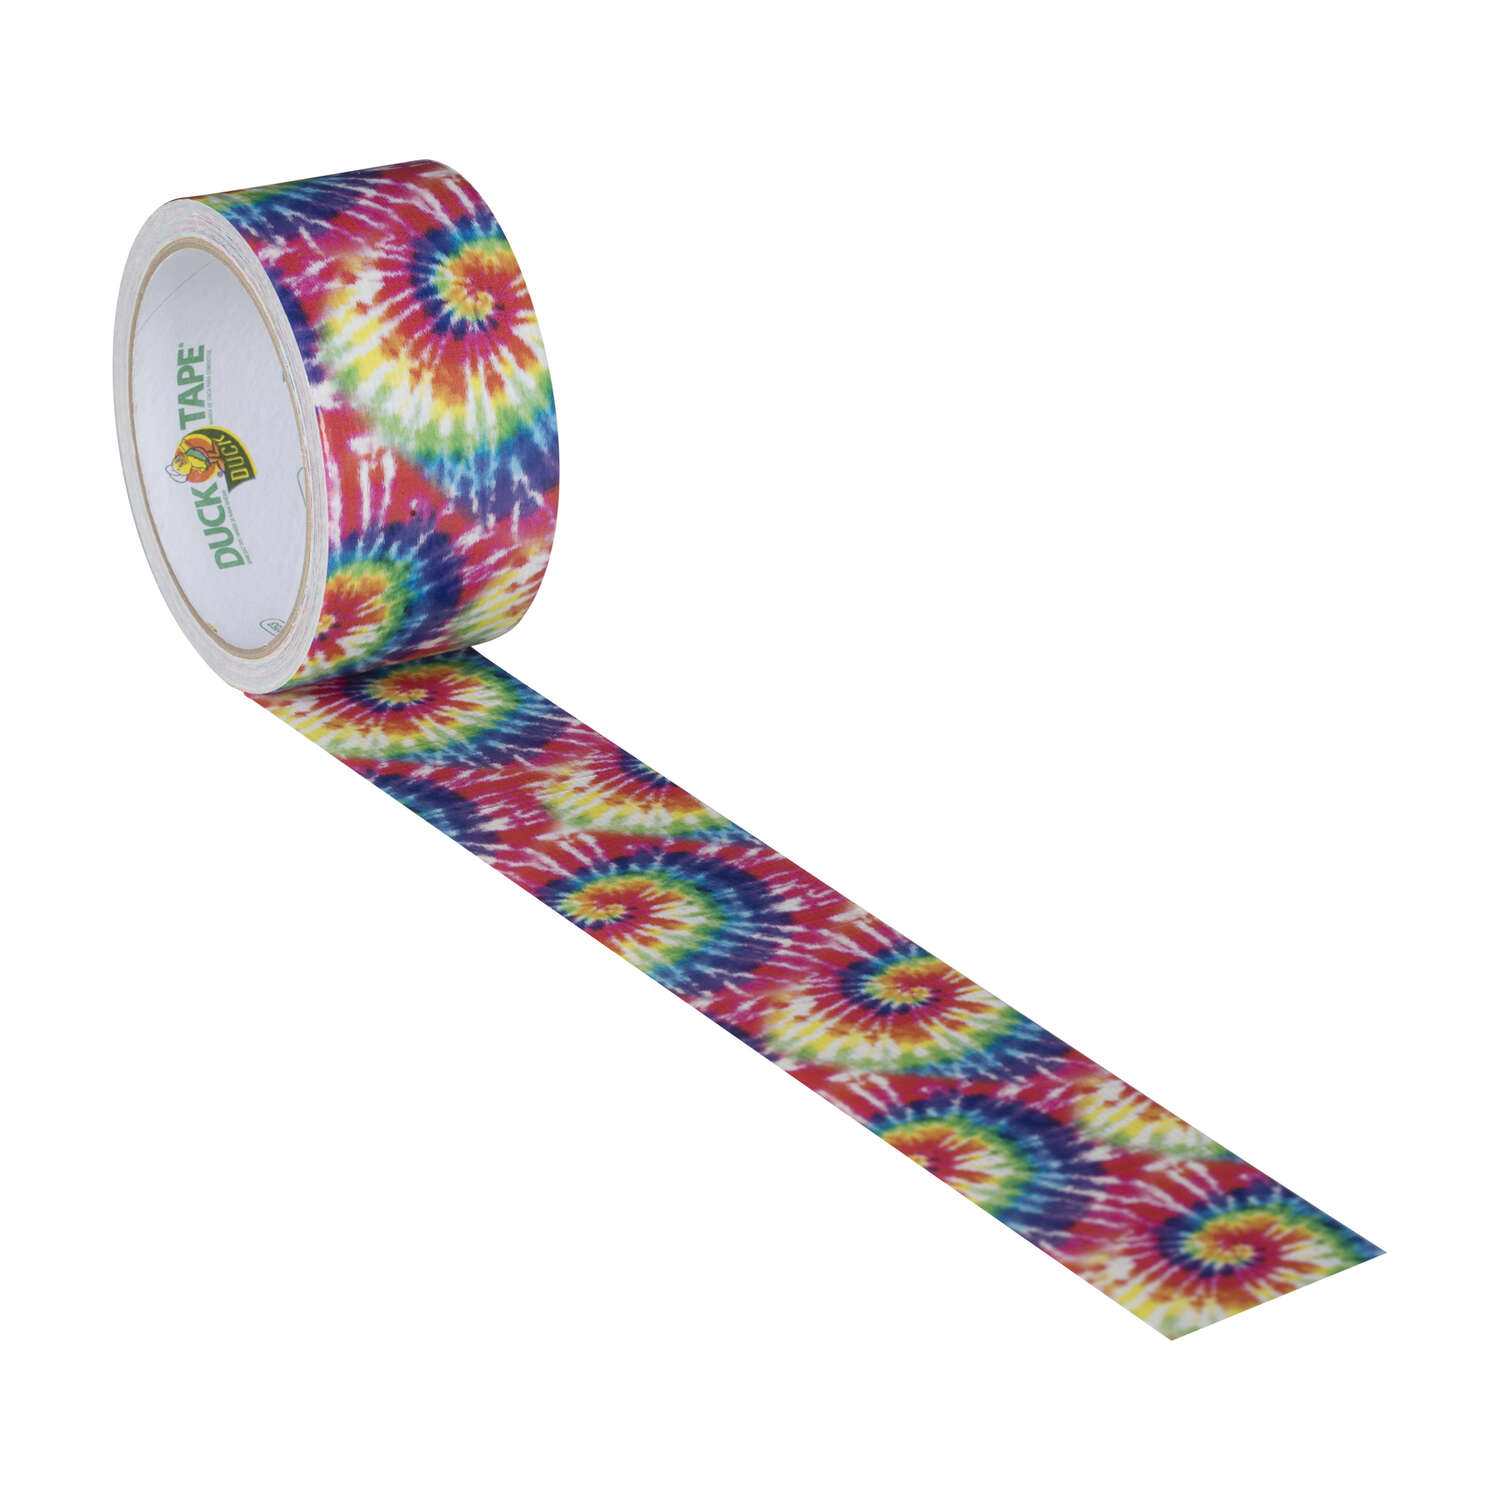 Duck Brand  30 ft. L x 1.88 in. W Multicolored  Love Tie Dye  Duct Tape